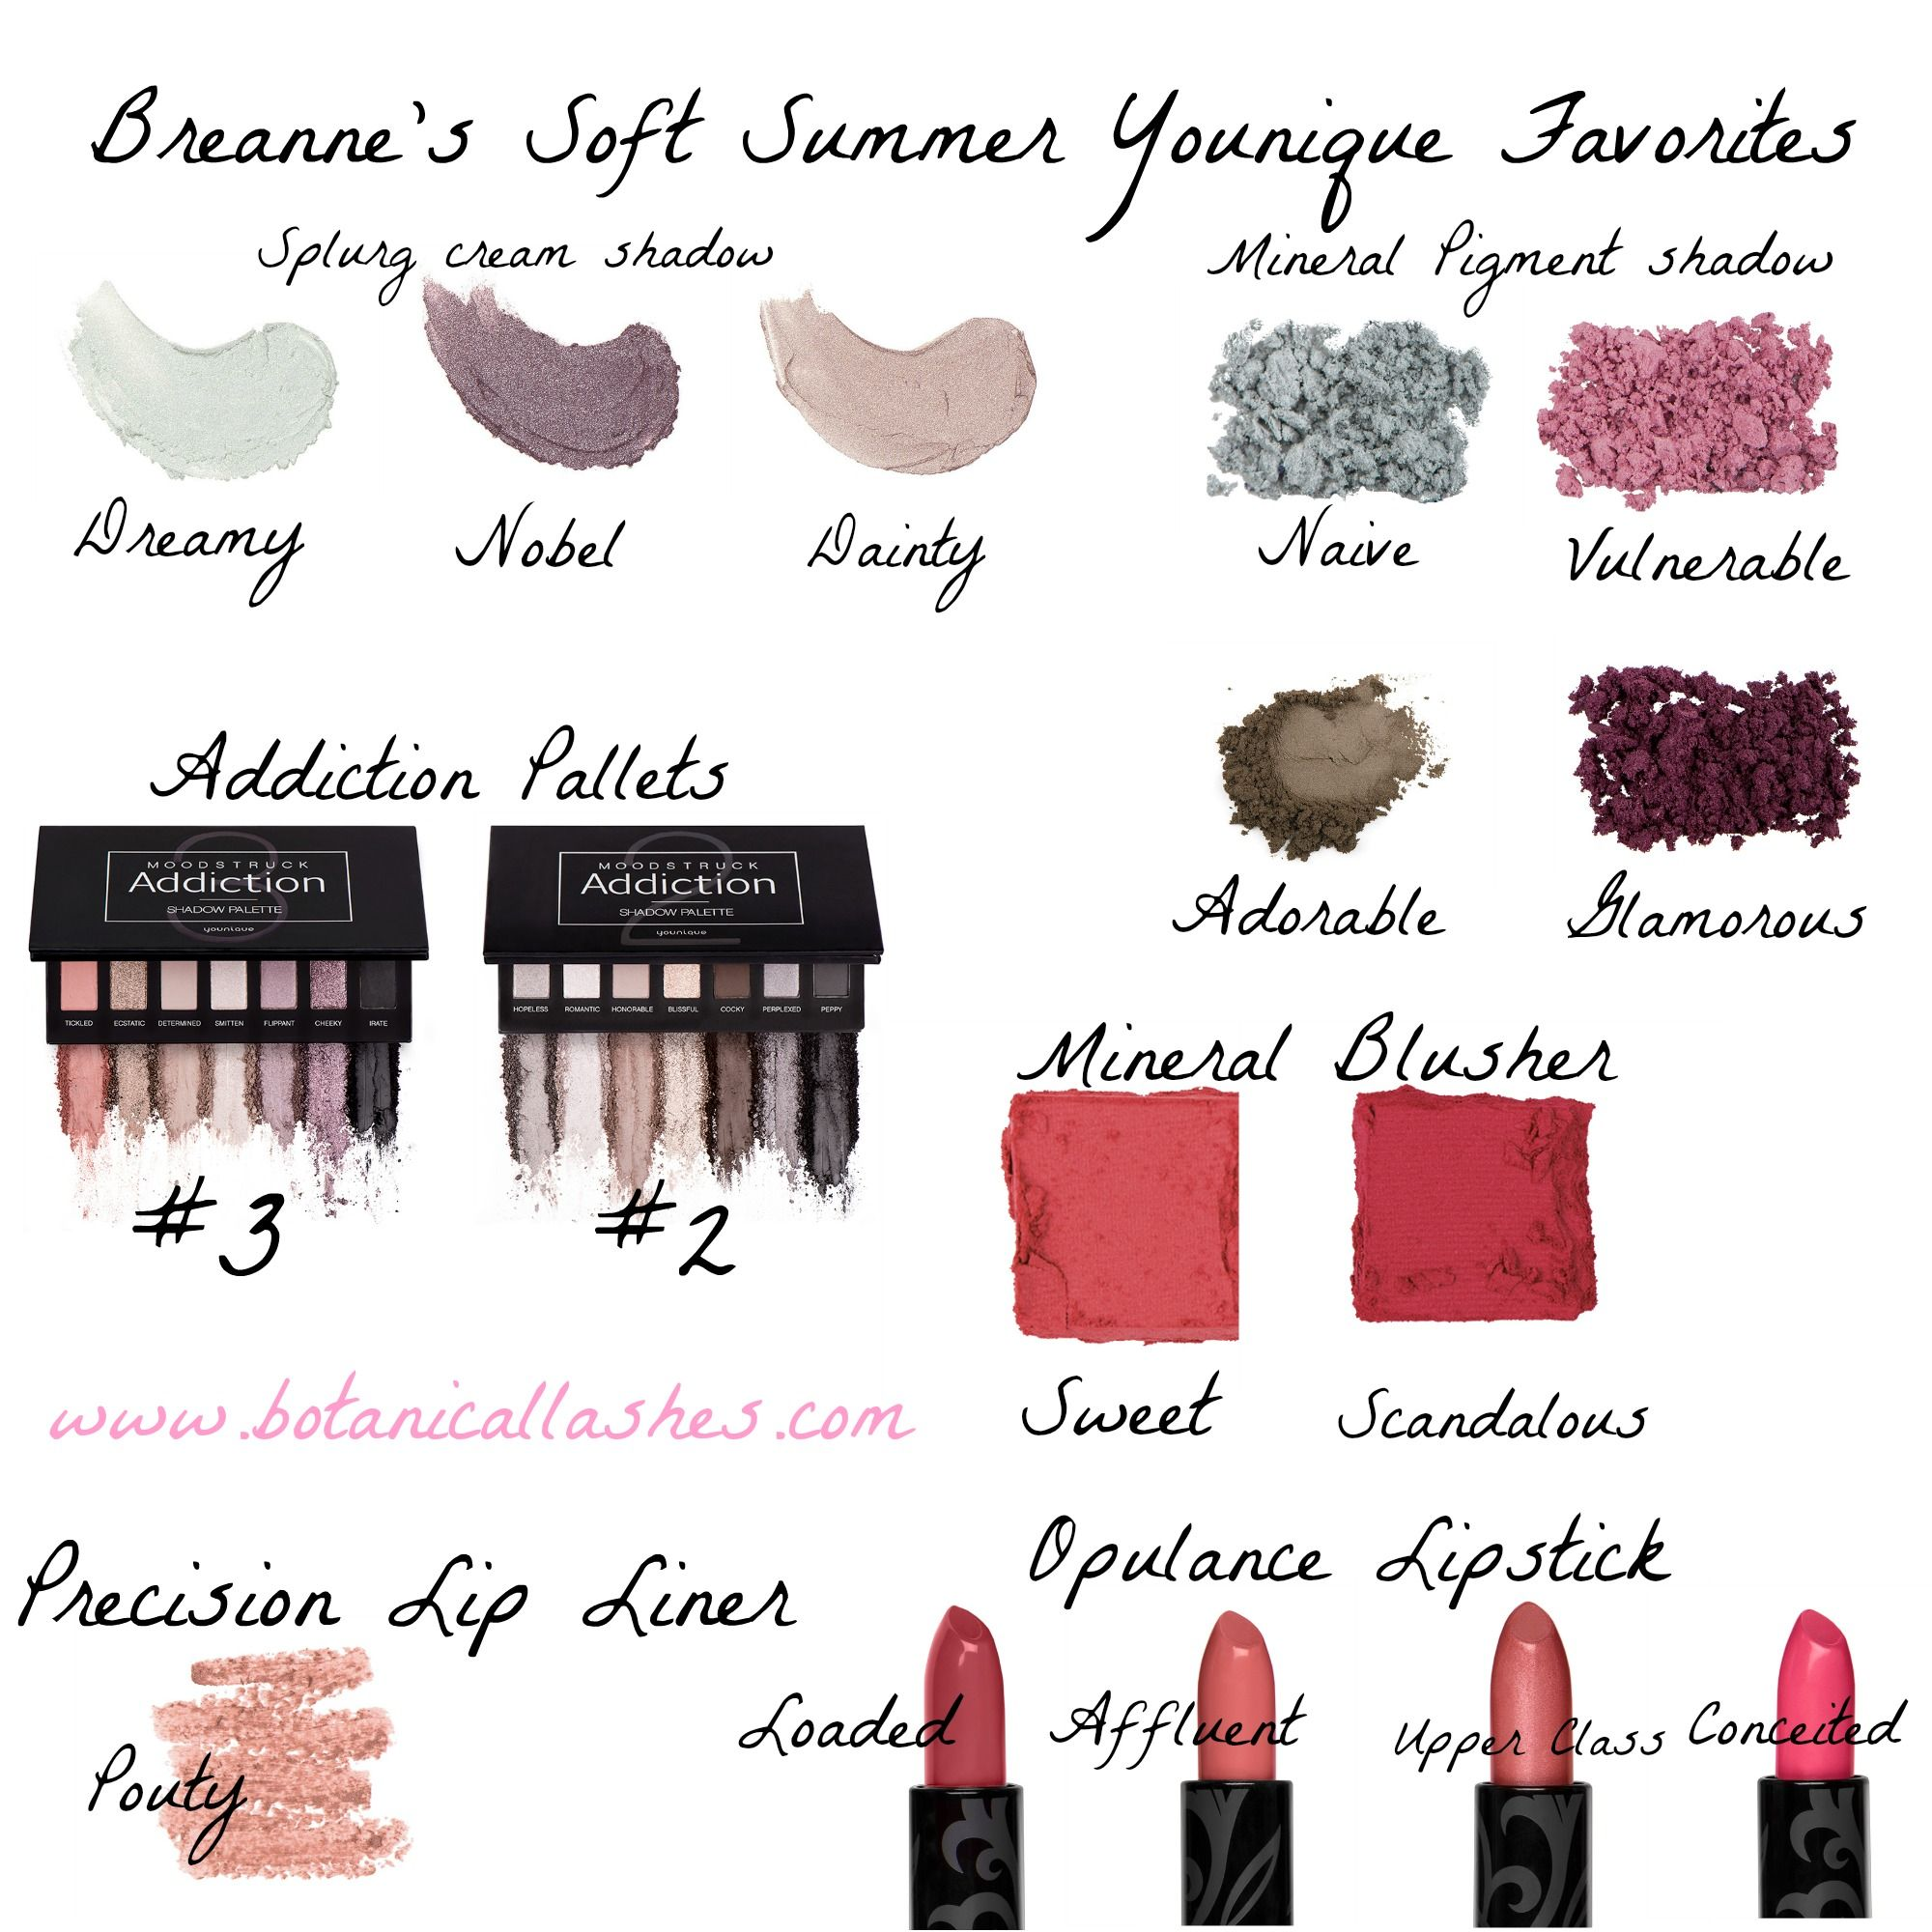 My Favorite Soft Summer Swatched And Worn Soft Summer Makeup By Younique Send Me A Pm If You Have A Soft Summer Makeup Soft Summer Palette Soft Summer Colors